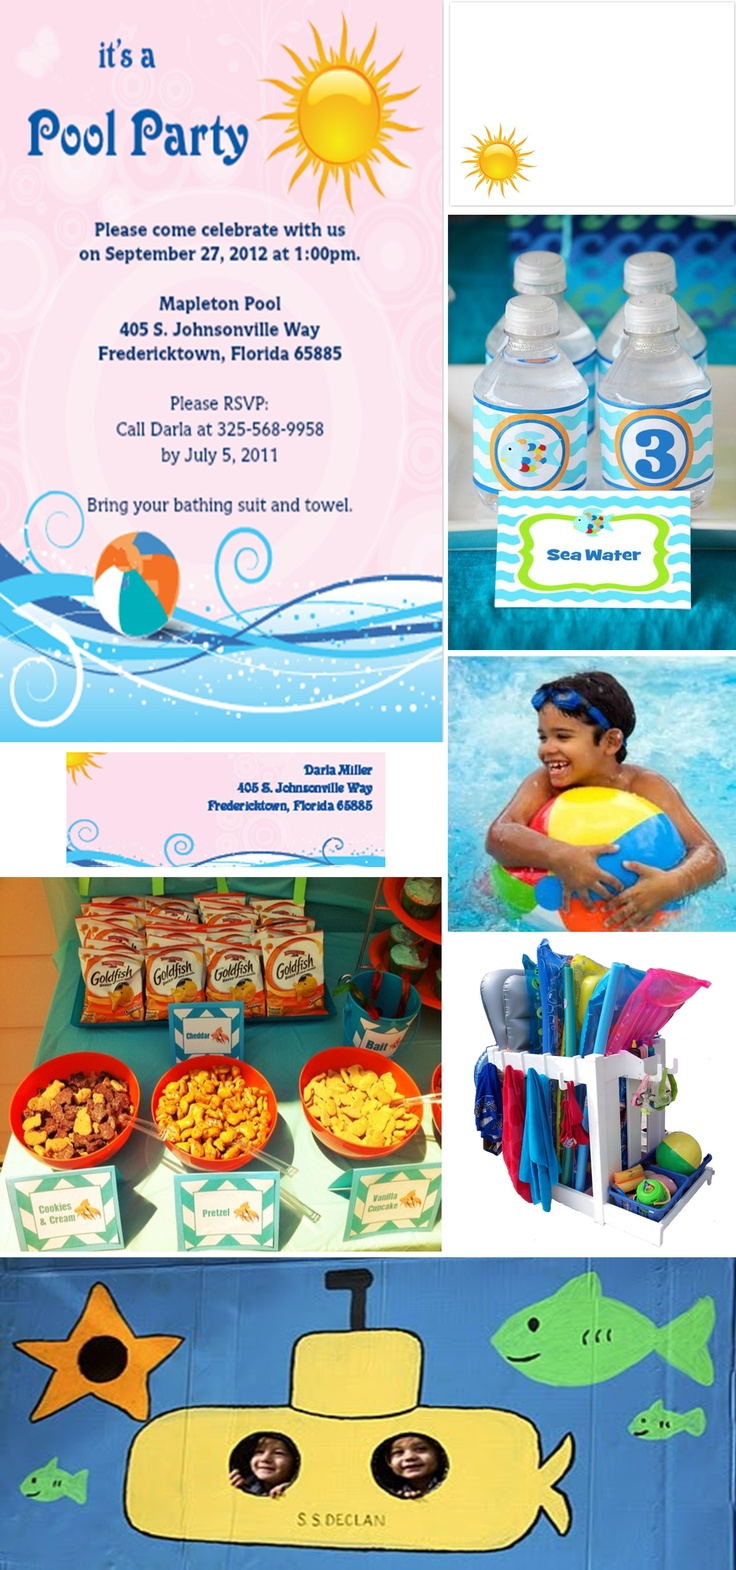 17 best images about indoor pool party on pinterest - Swimming pool party ideas for kids ...